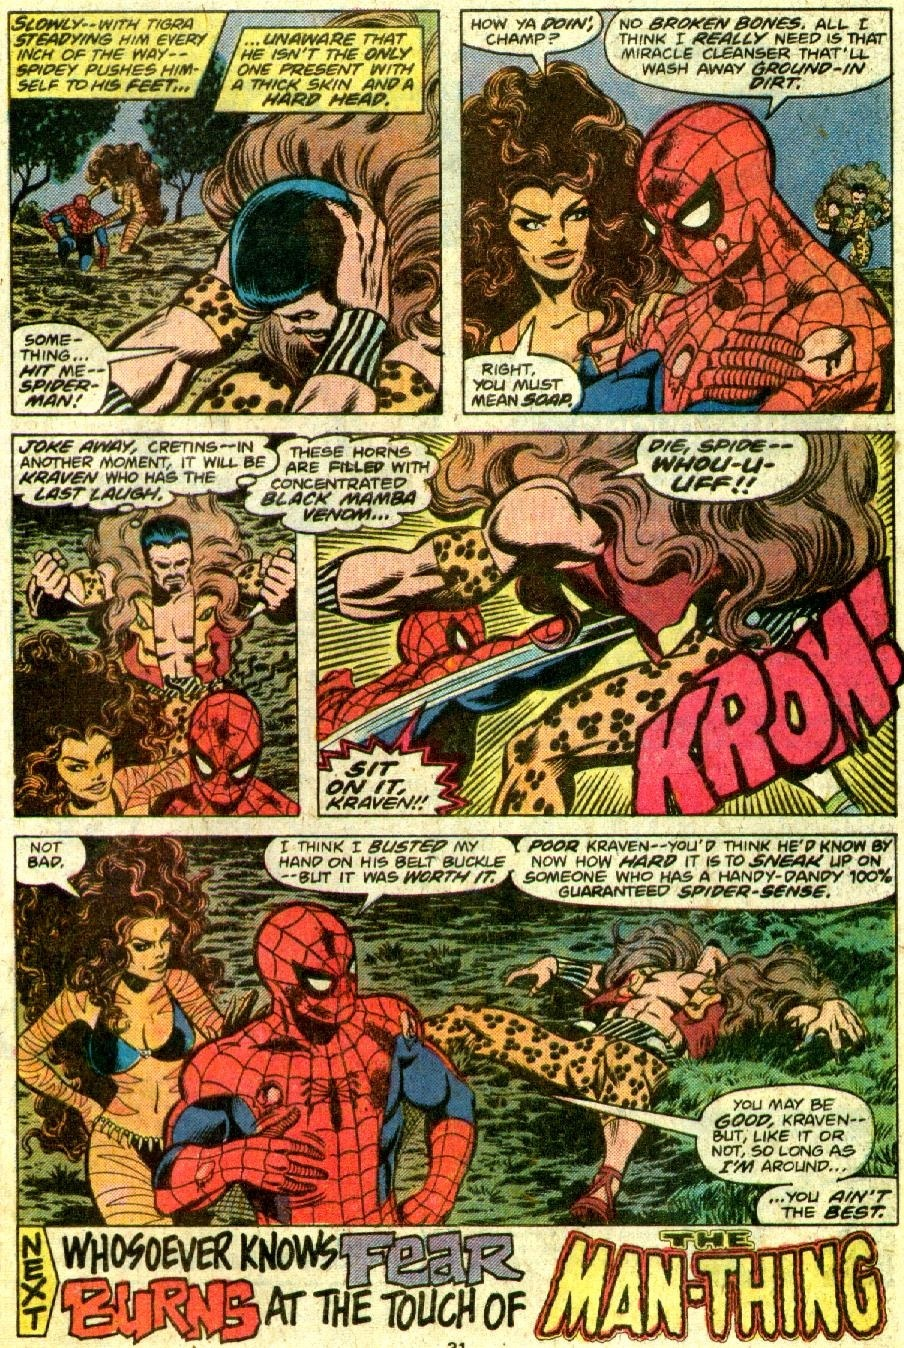 This is a guy that hurts his hand hitting Kraven's belt buckle...